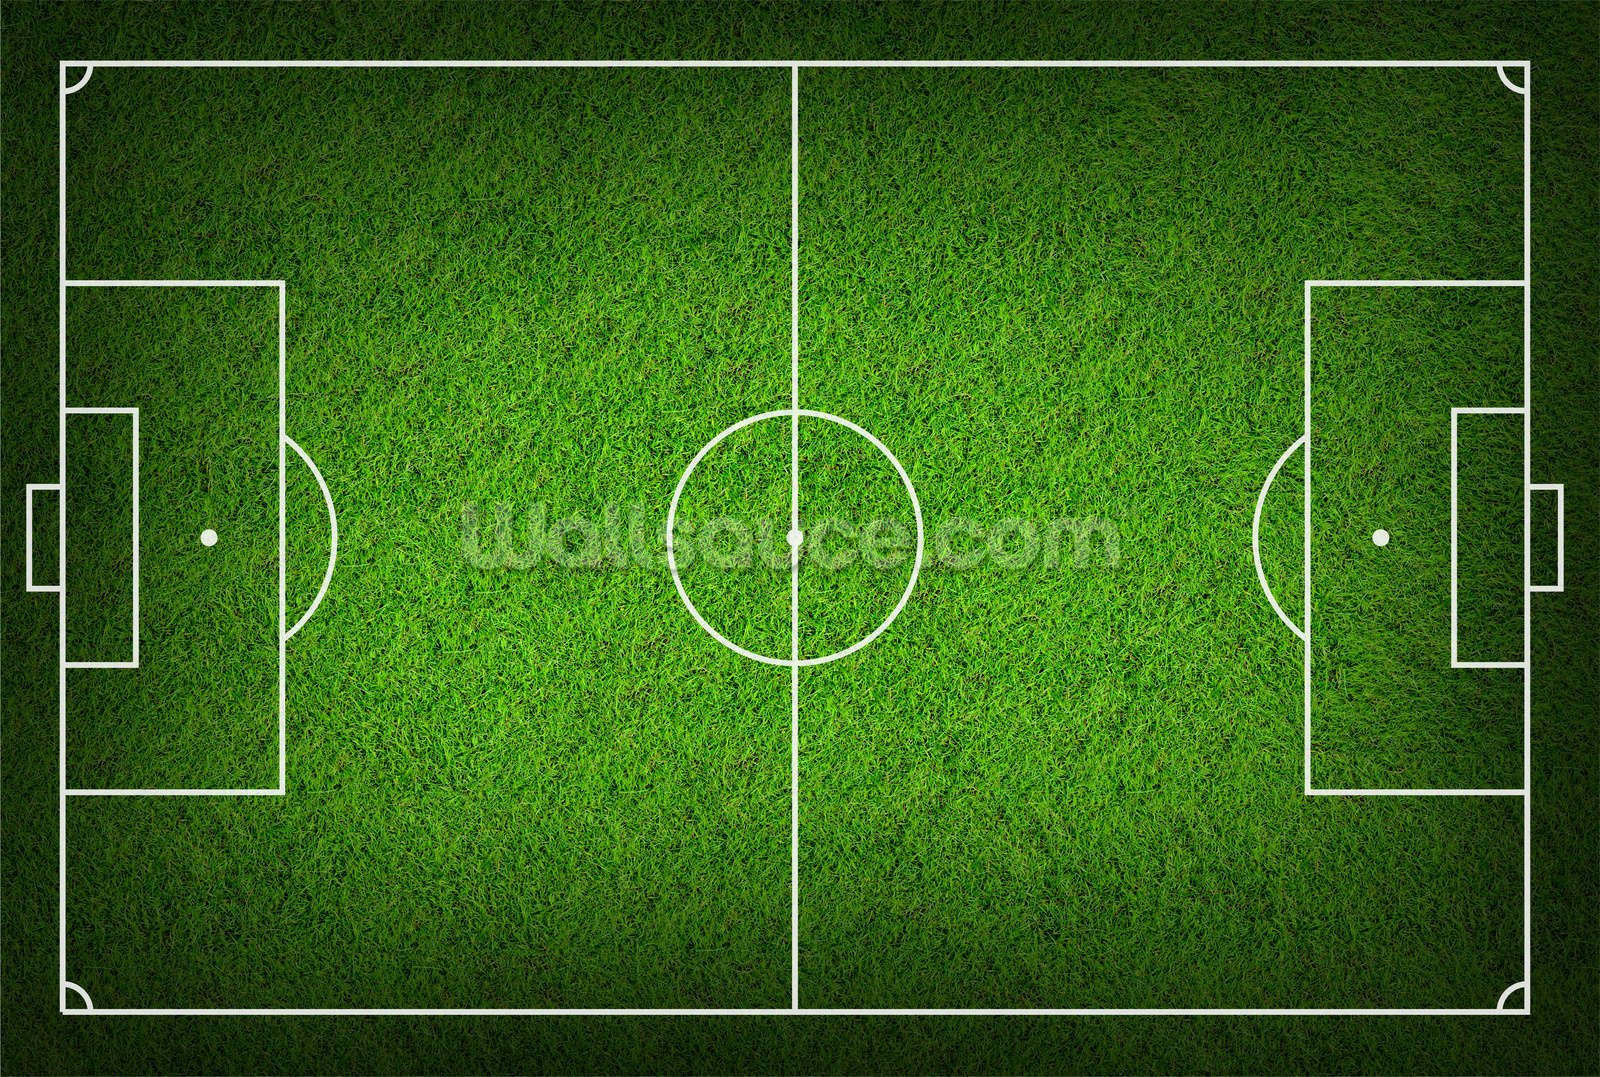 Football Pitch Wall Mural Wallpaper